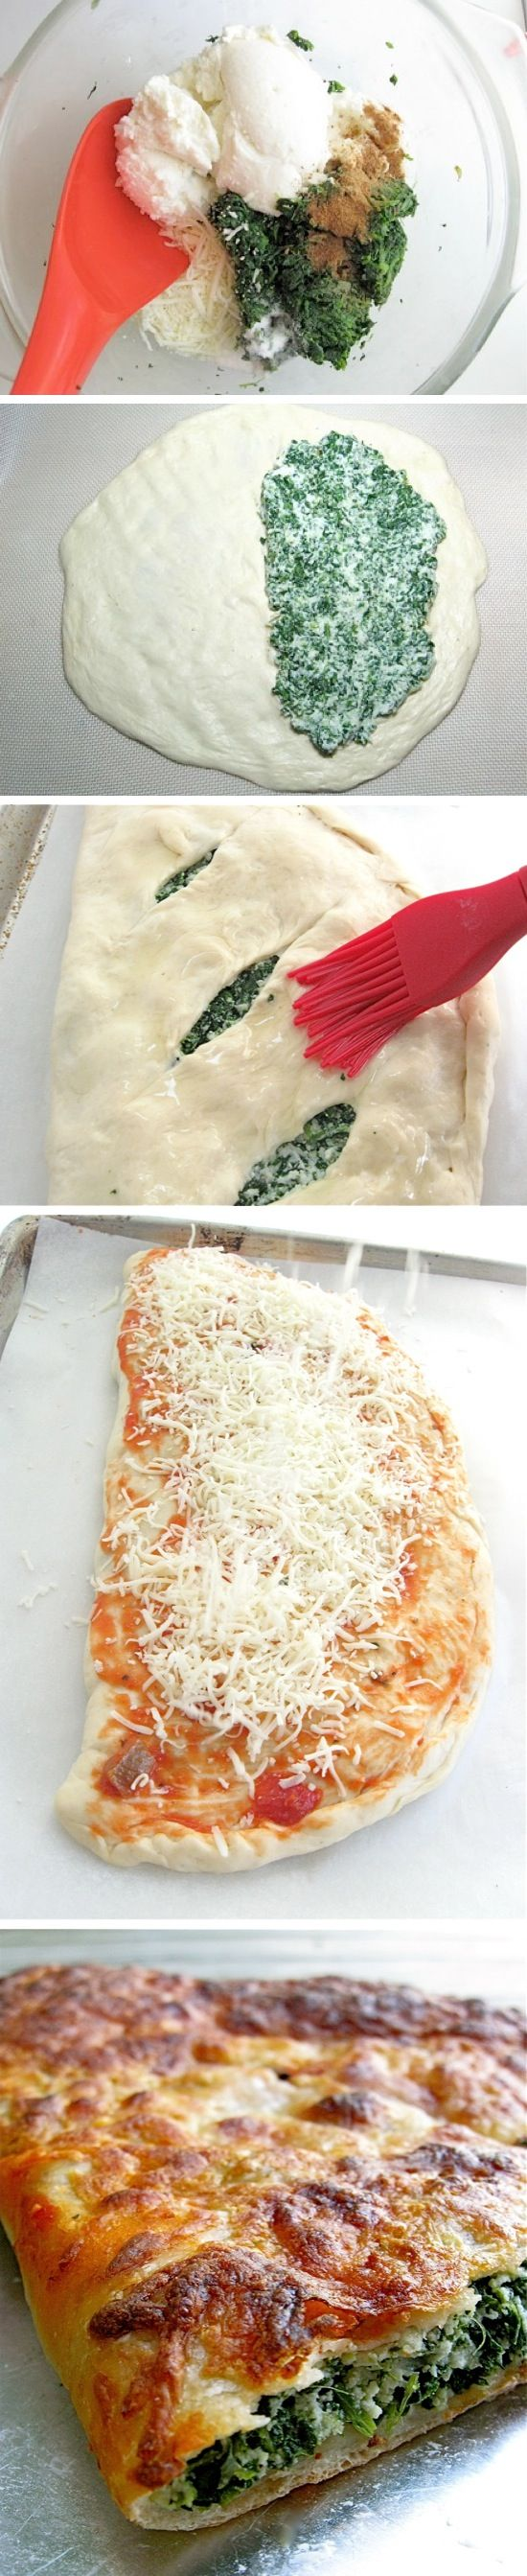 Spinach Ricotta Calzones. Added kale, garlic, feta, and Italian cheeses. Cook for 15-18 minutes. Yum!!